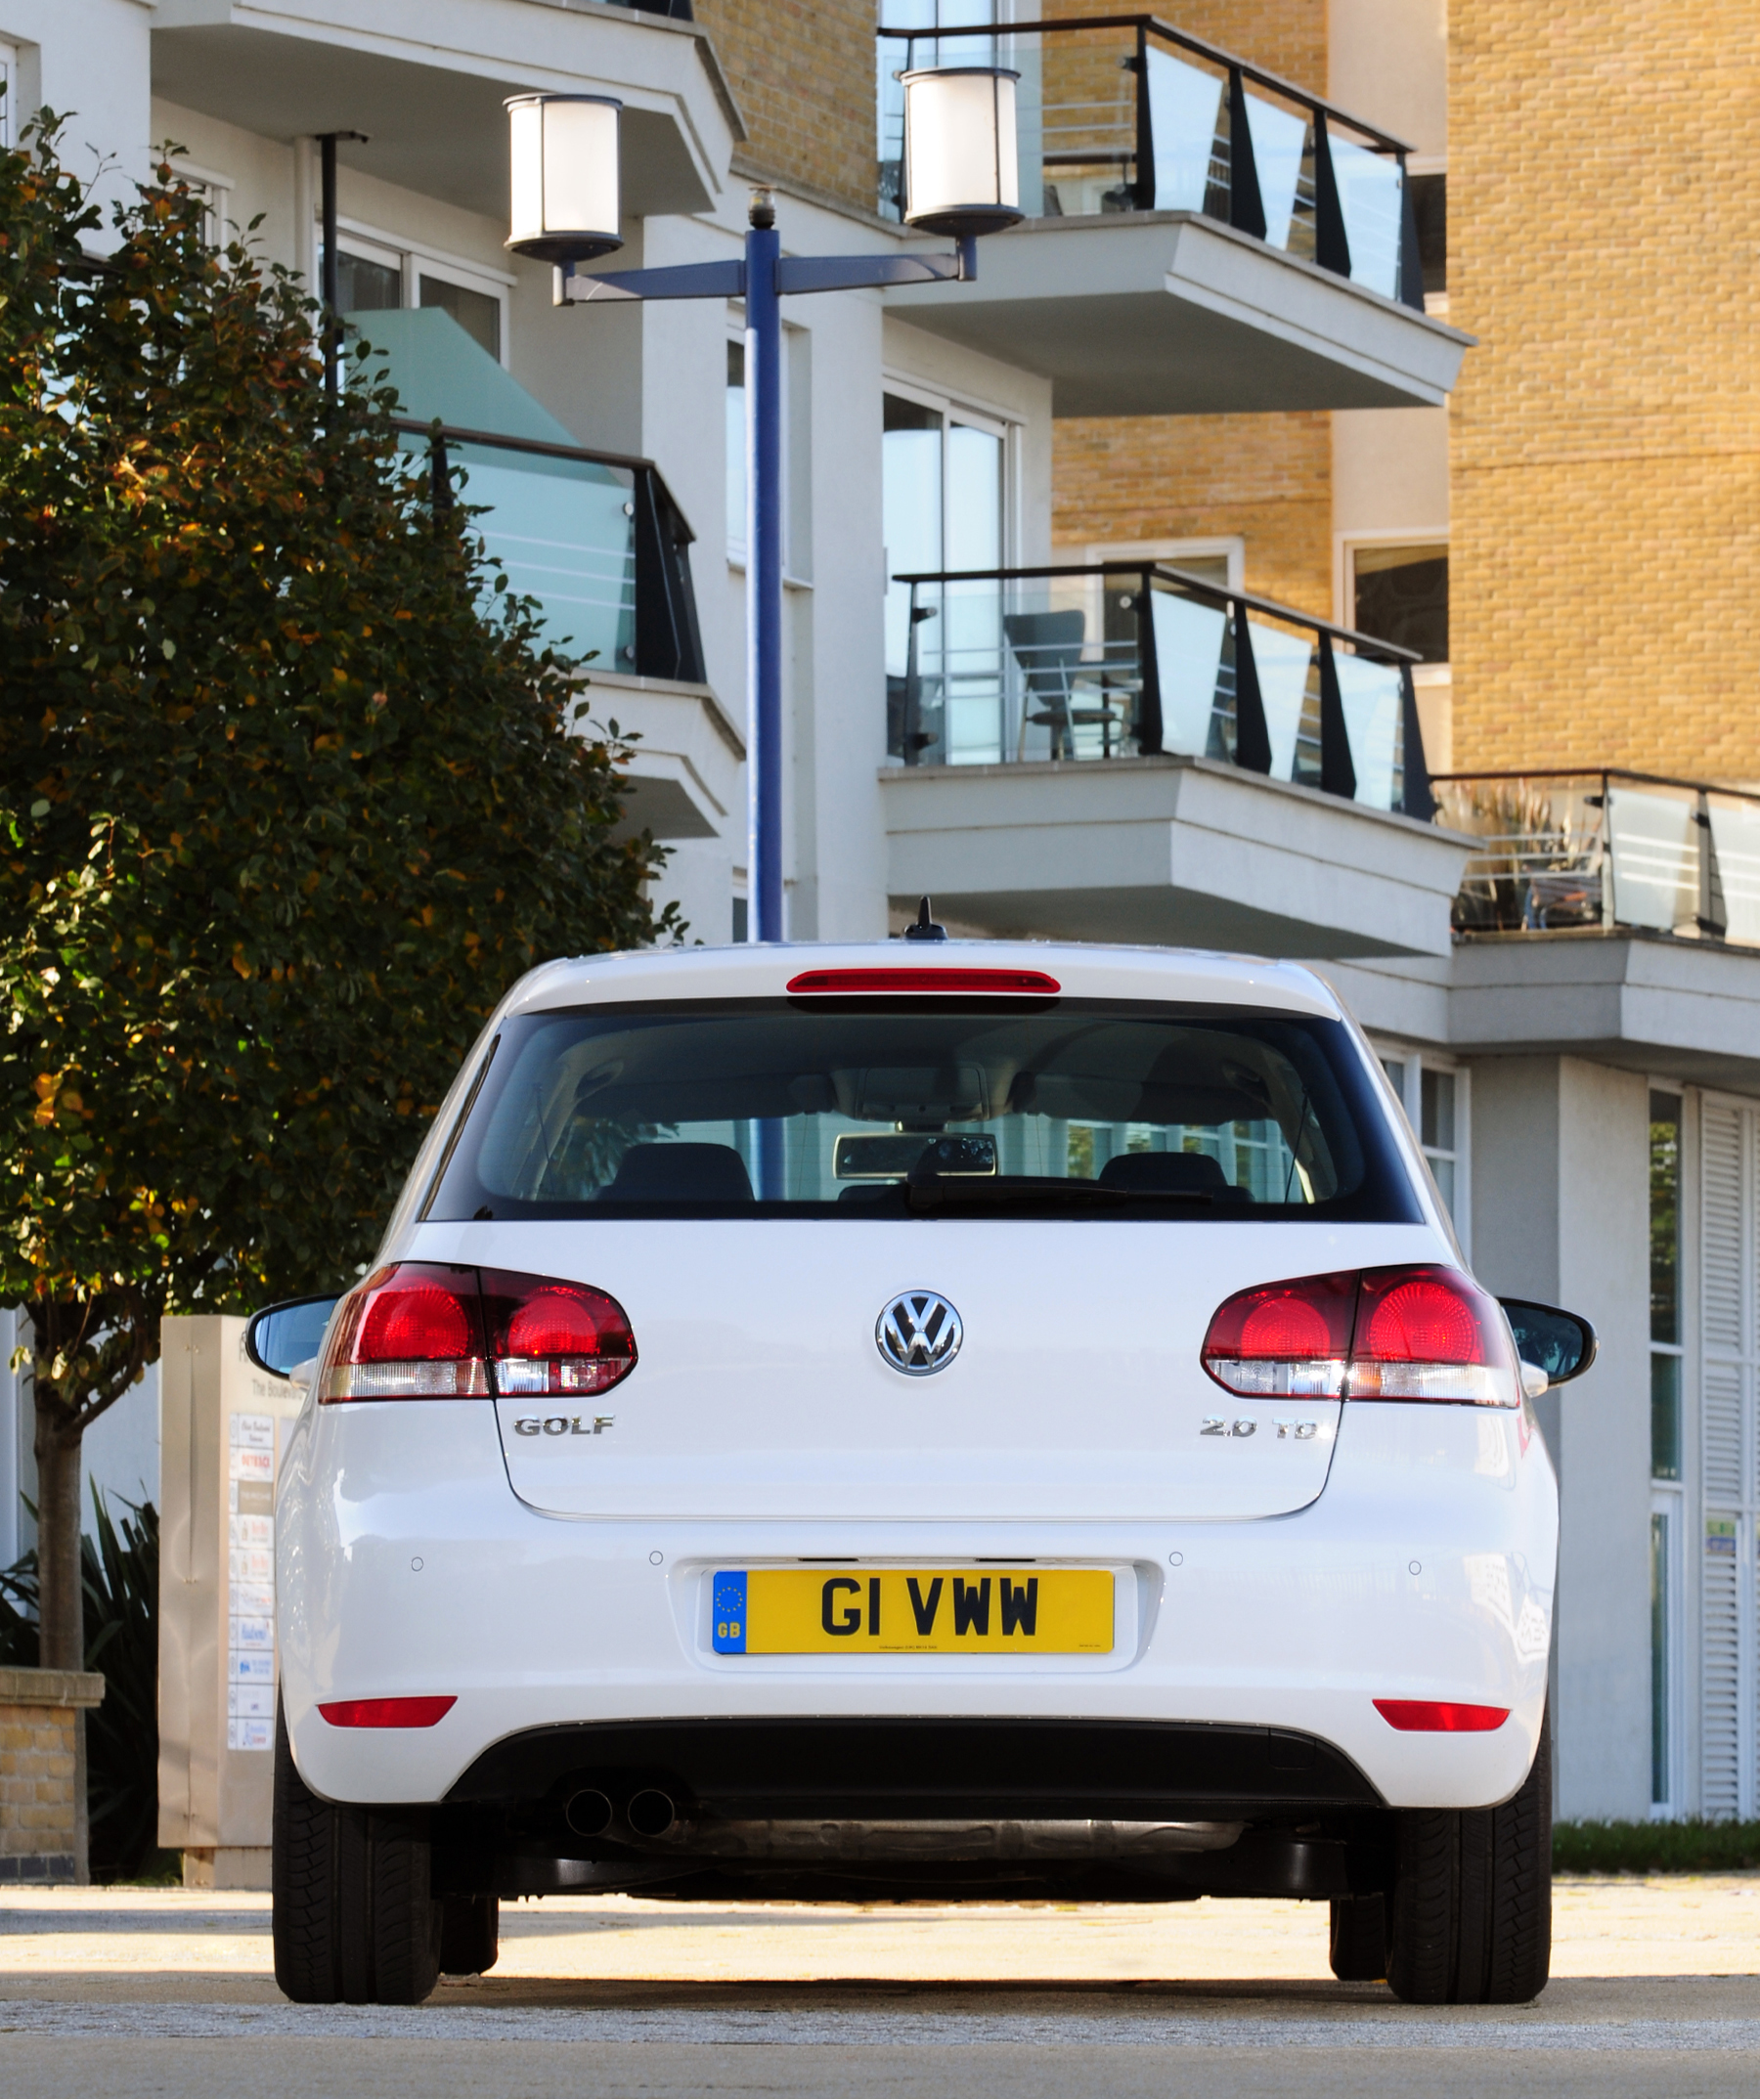 Volkswagen Golf Match Tsi Bluemotion Technology: Volkswagen Golf VI Match Is Added To The Model Line-up